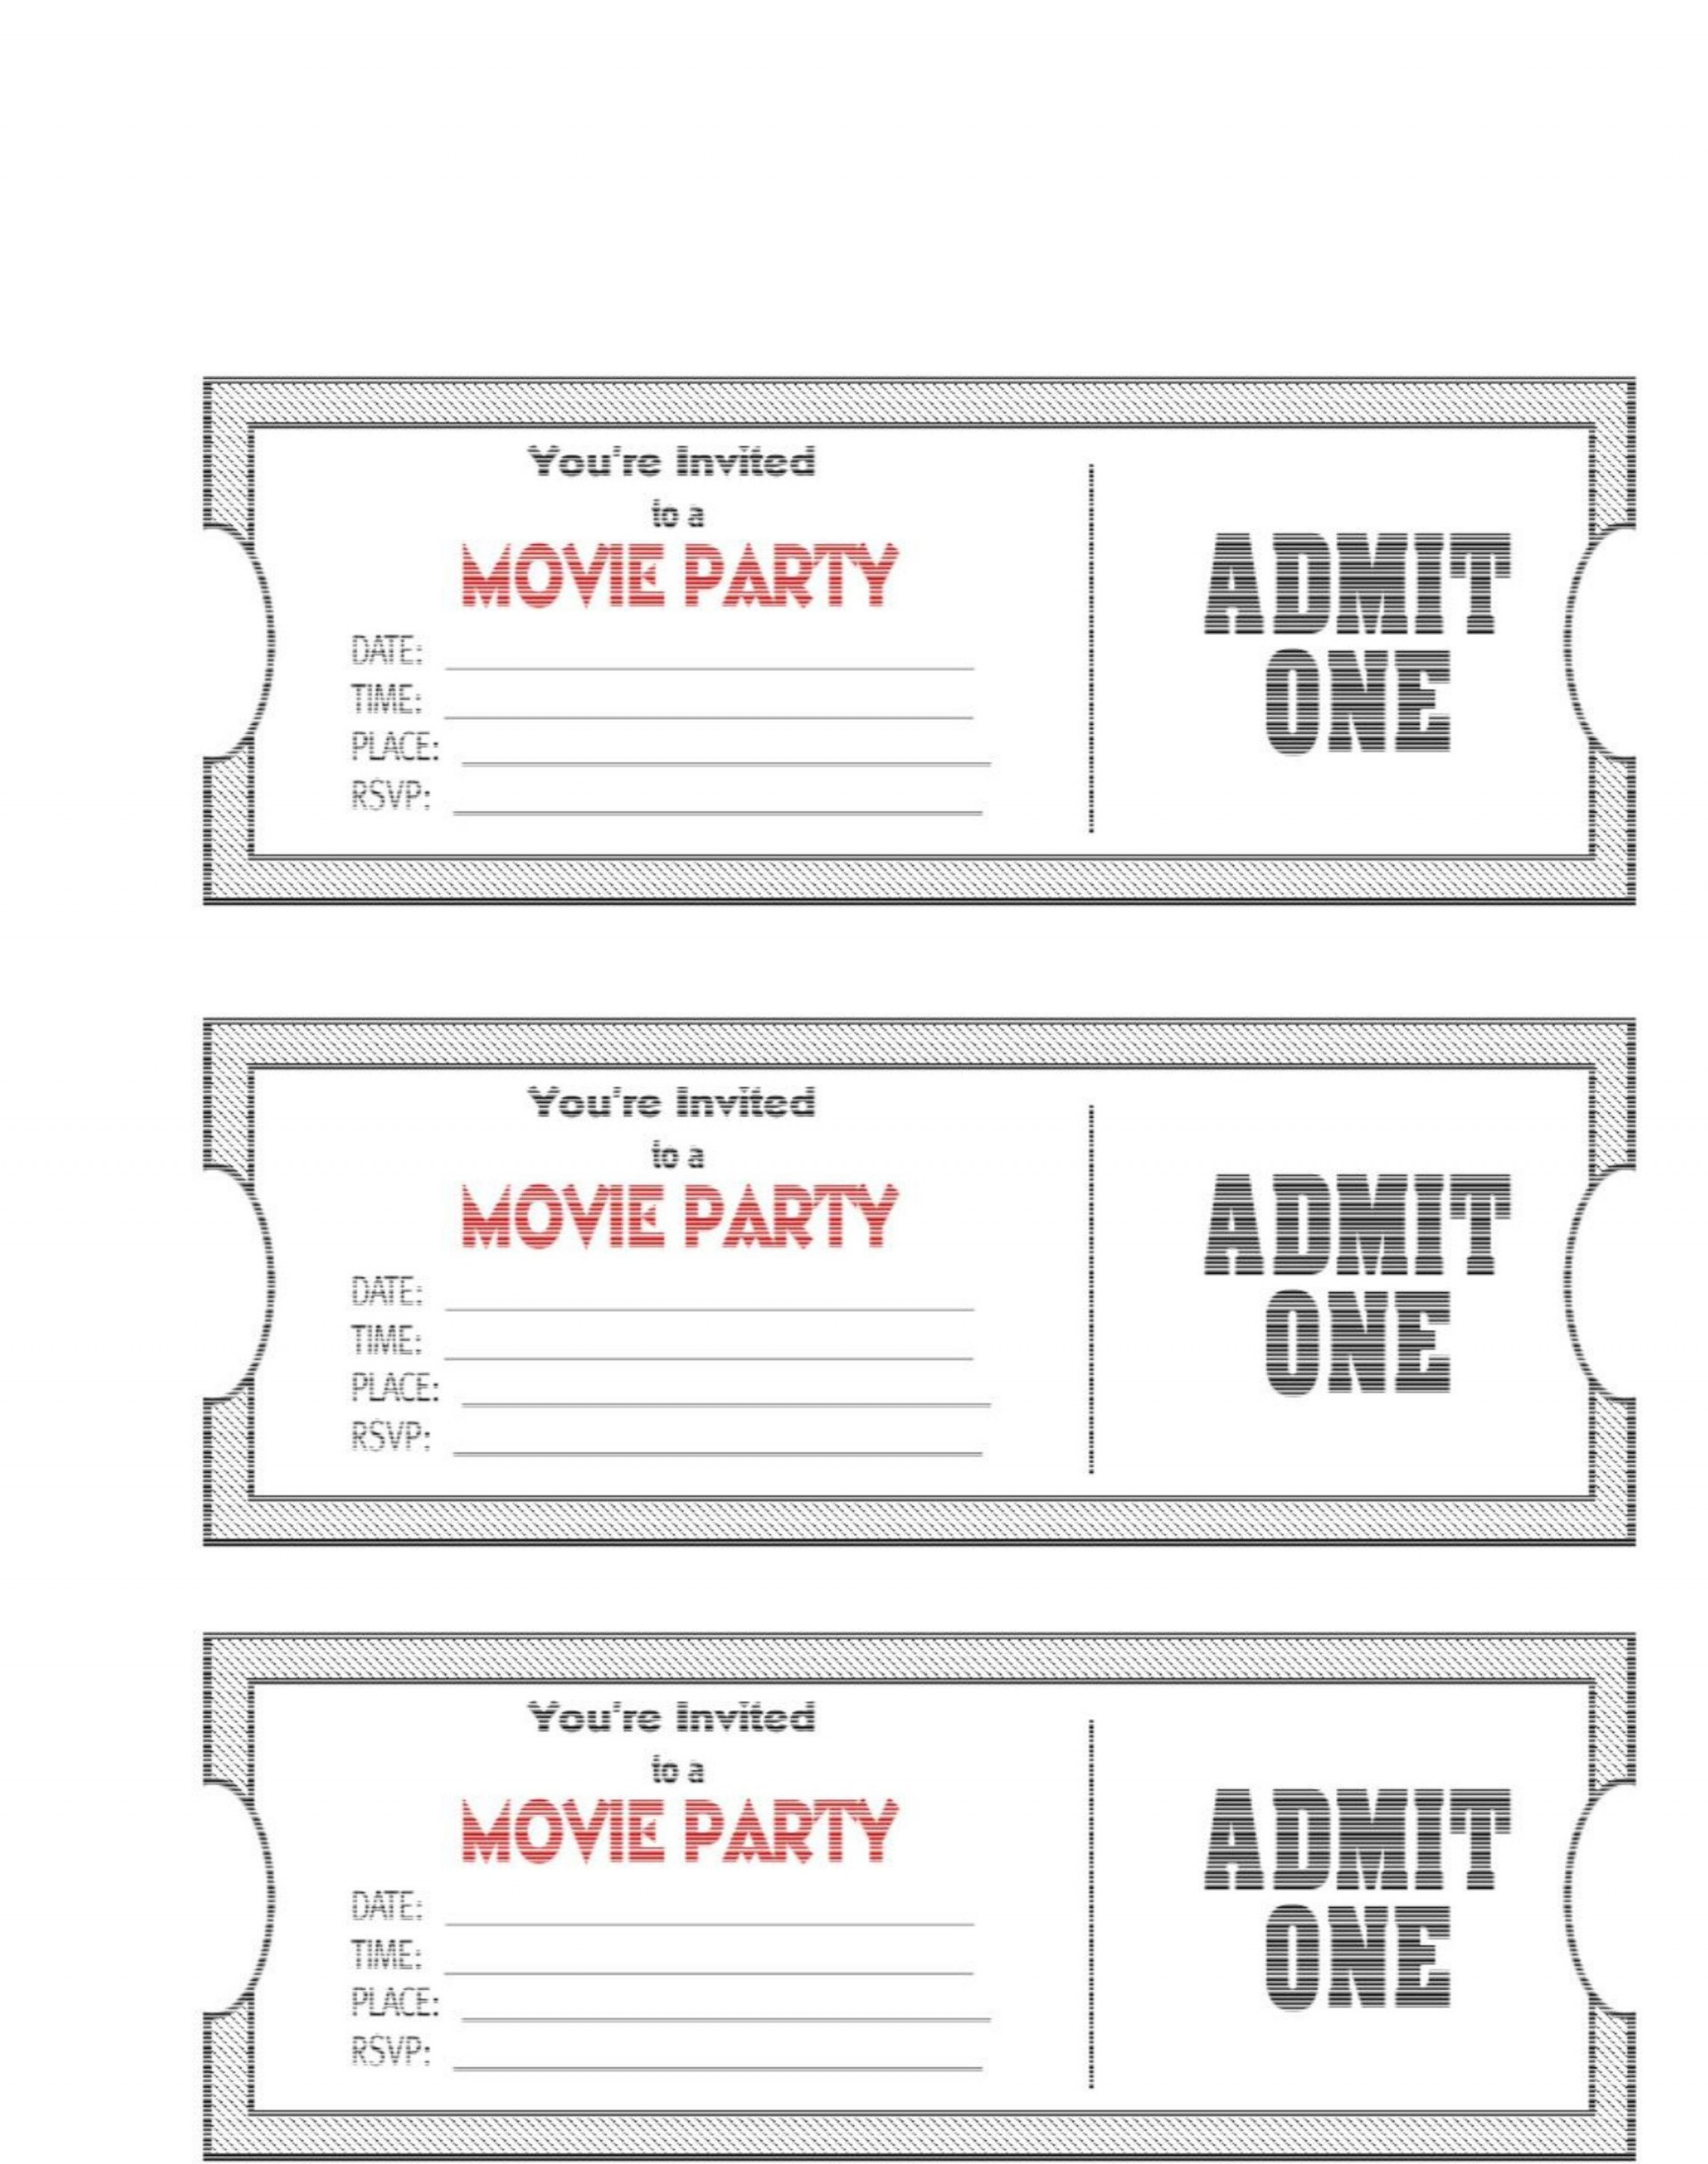 002 Stupendou Free Concert Ticket Maker Template Concept  Printable Gift1920